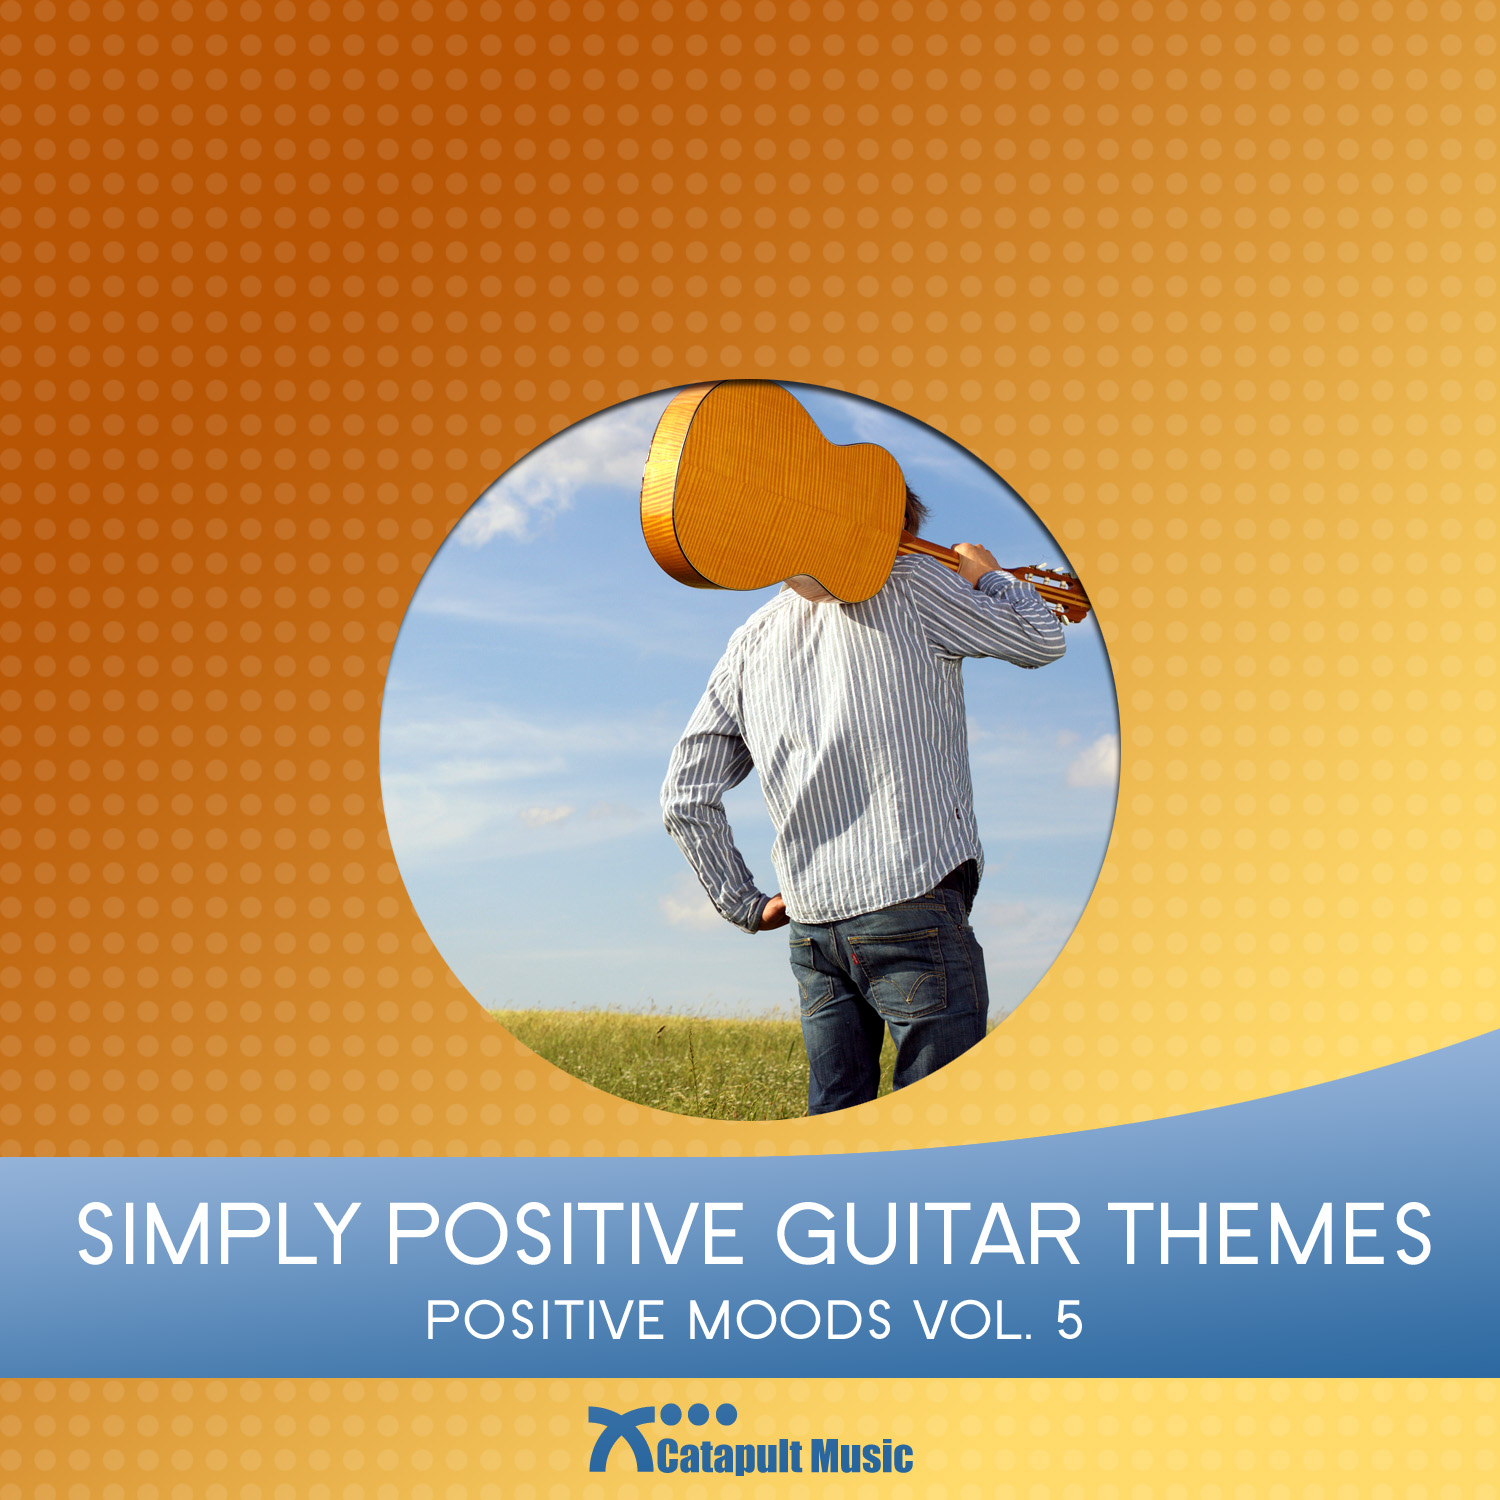 Simply Positive Guitar Themes